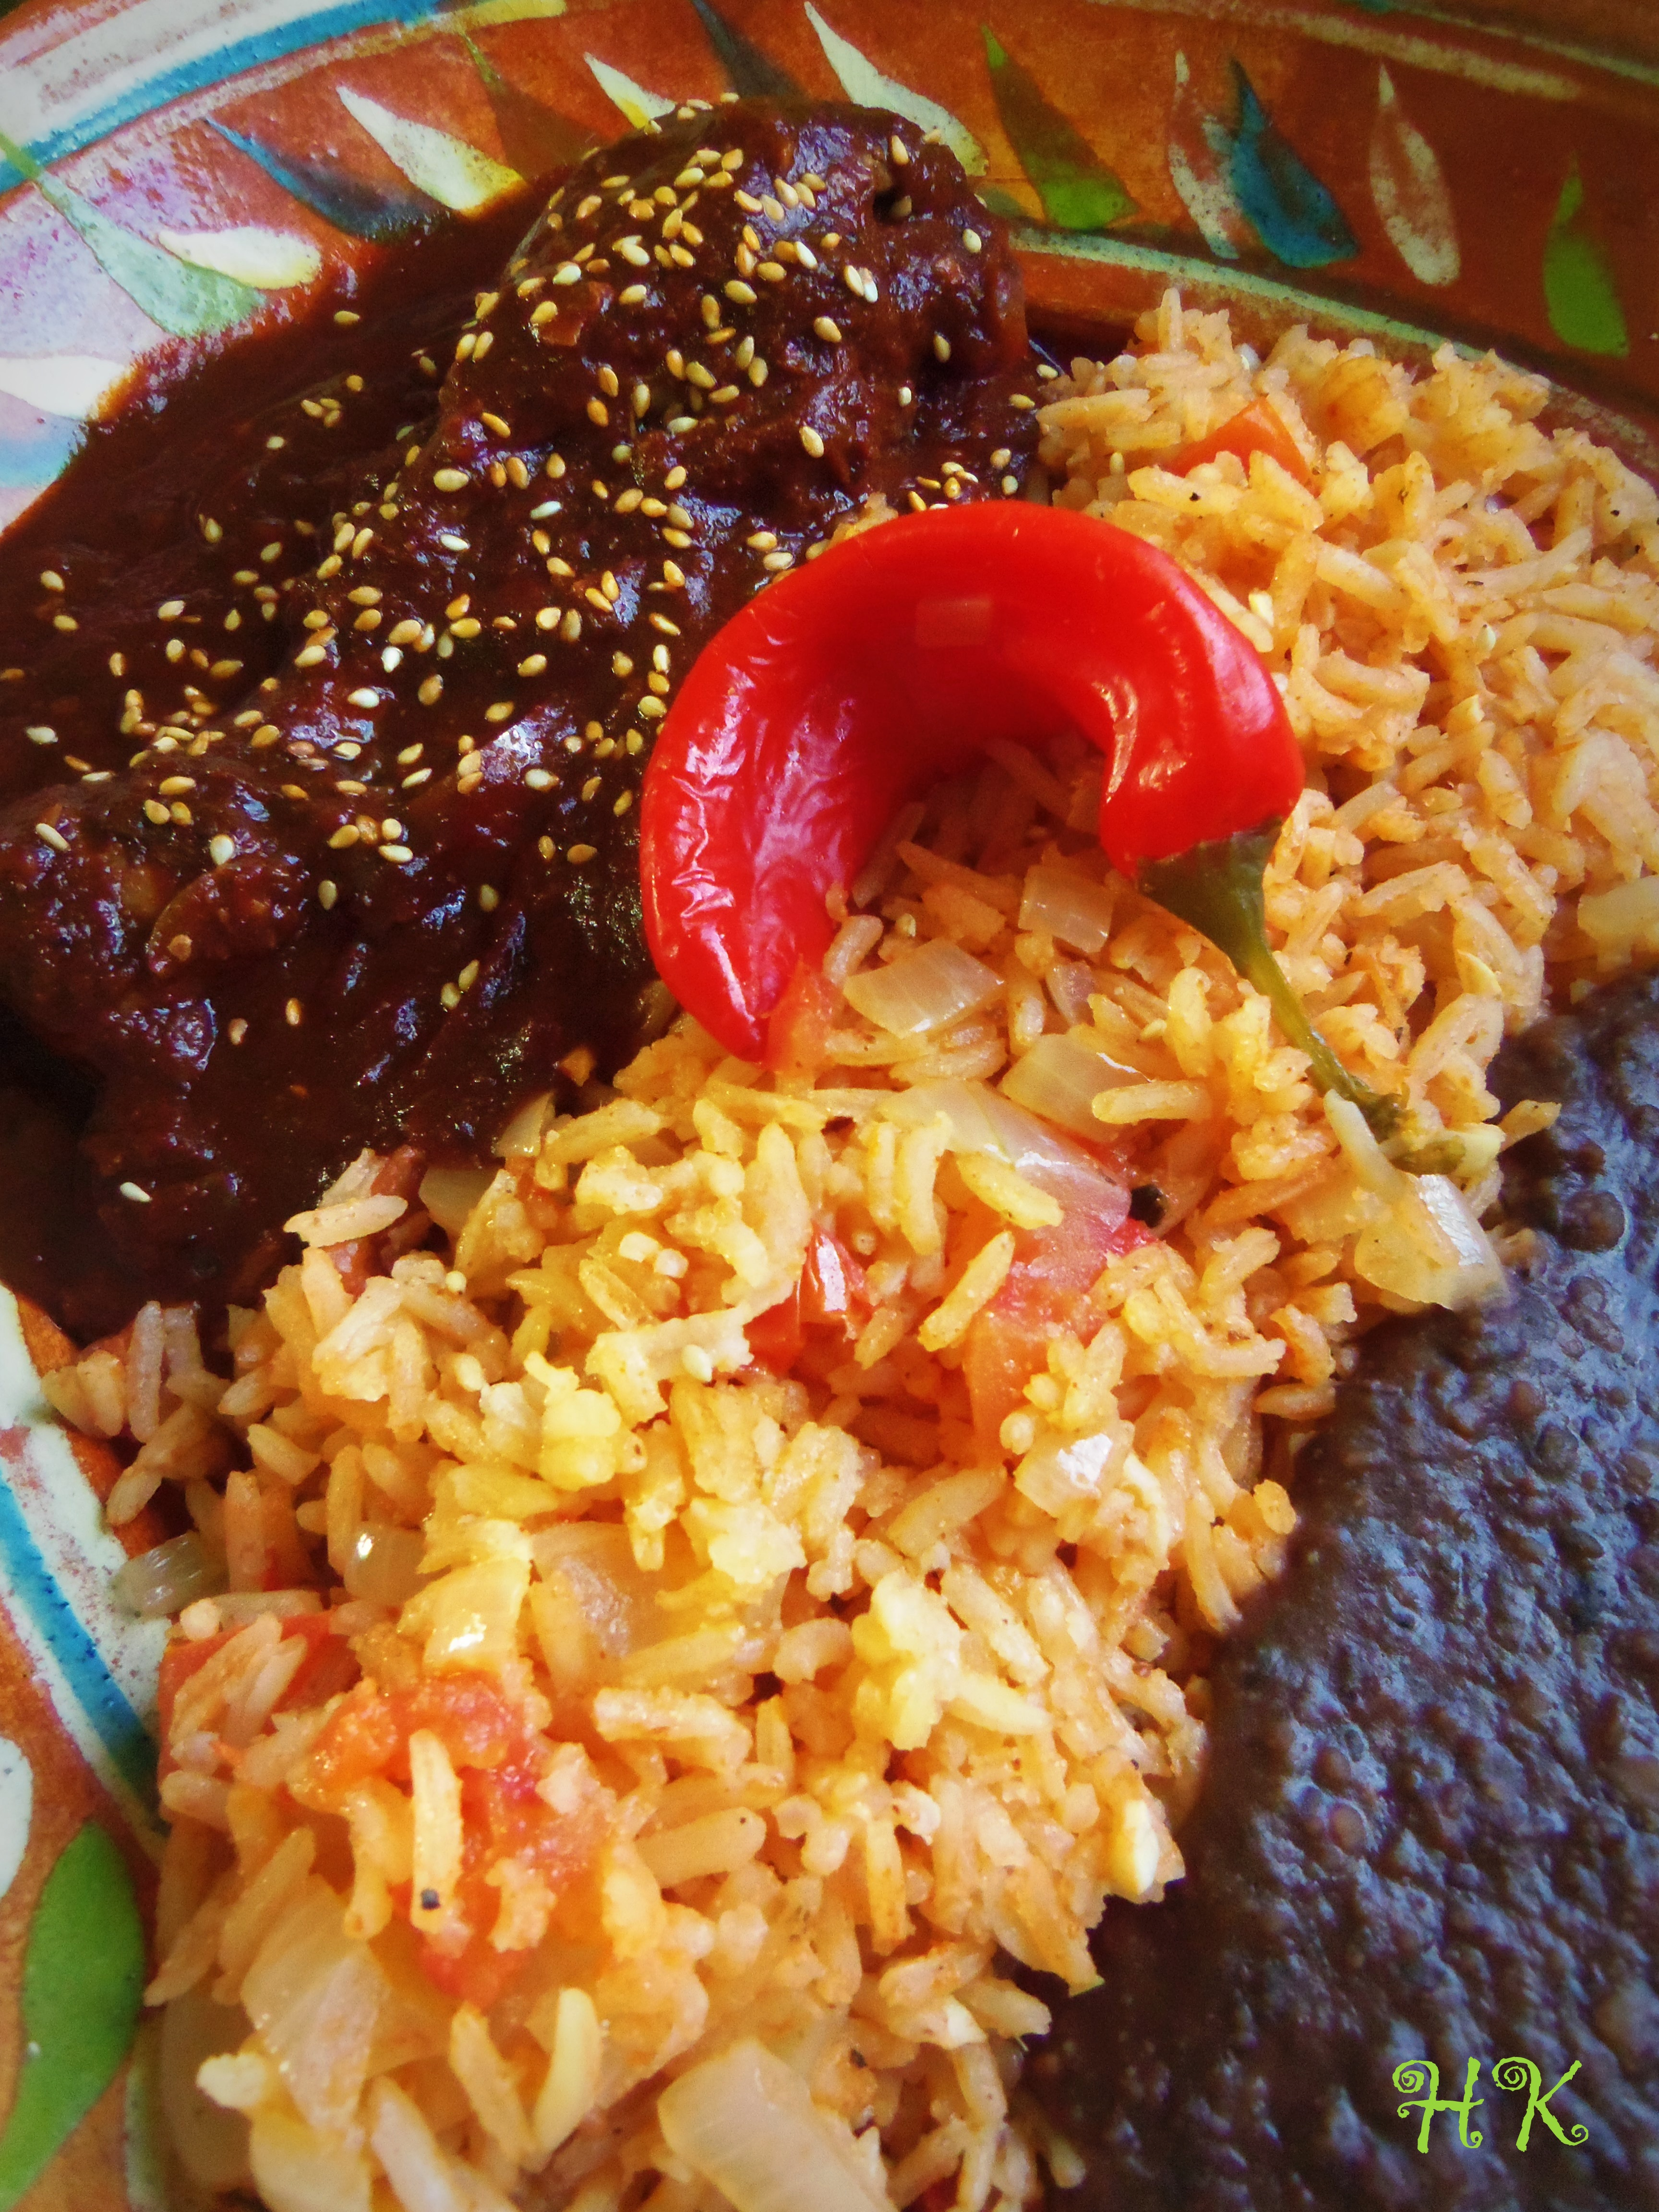 Chicken Mole, Mexican Red Rice and Refried Black Beans.